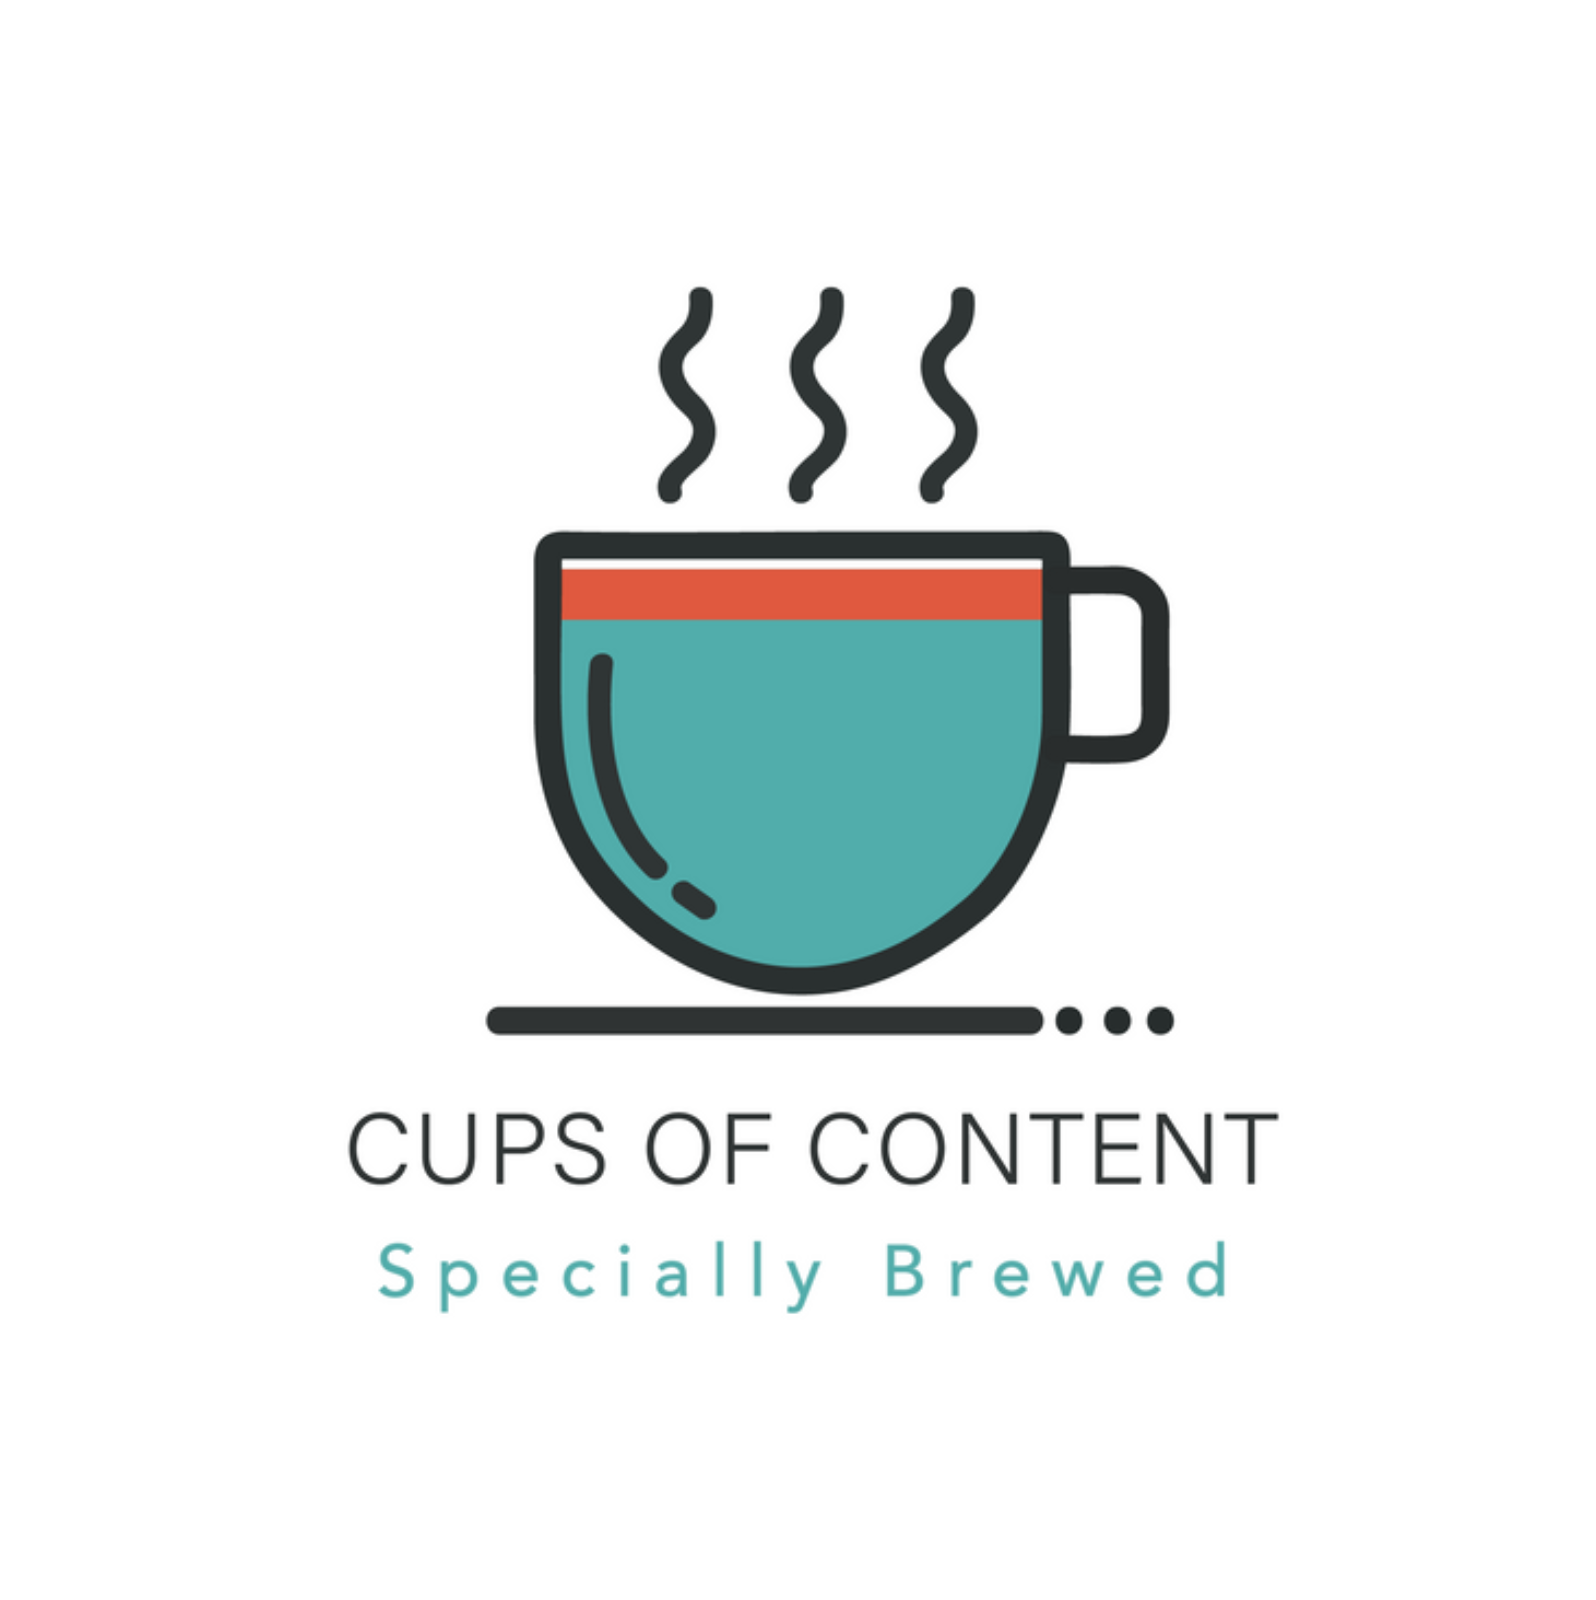 Cups of Content